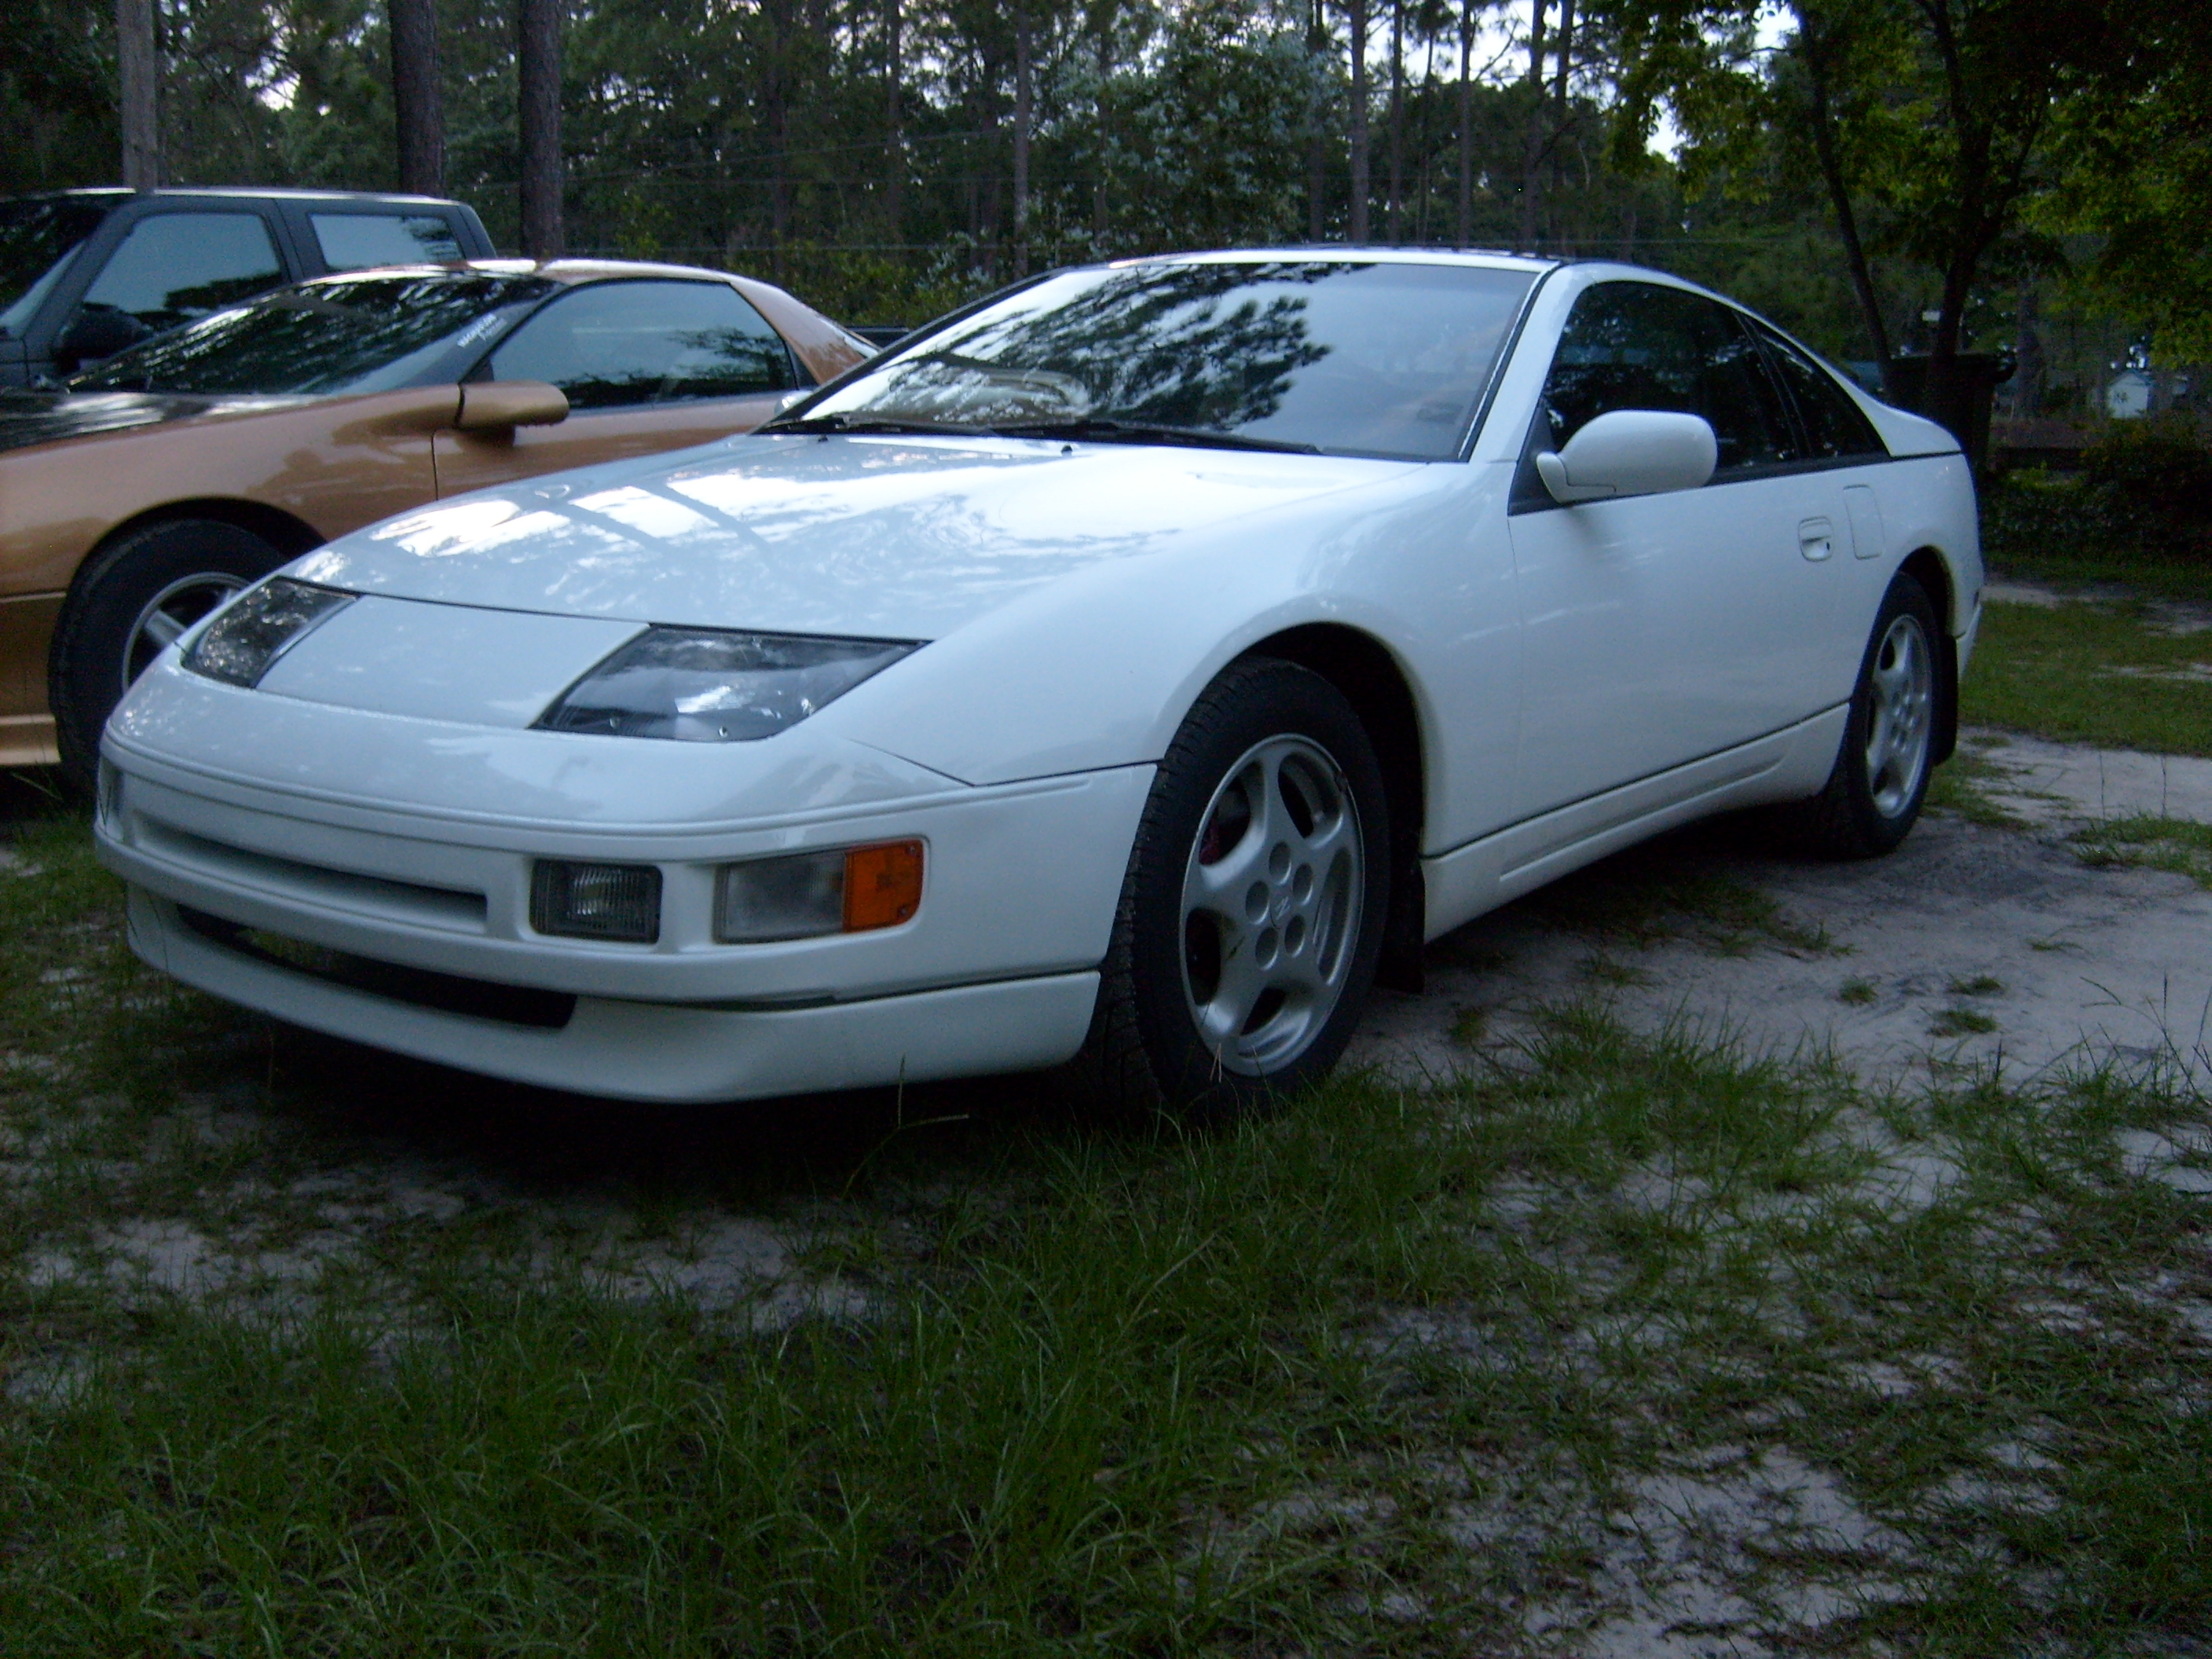 90 z32 1990 nissan 300zx specs photos modification info at cardomain. Black Bedroom Furniture Sets. Home Design Ideas